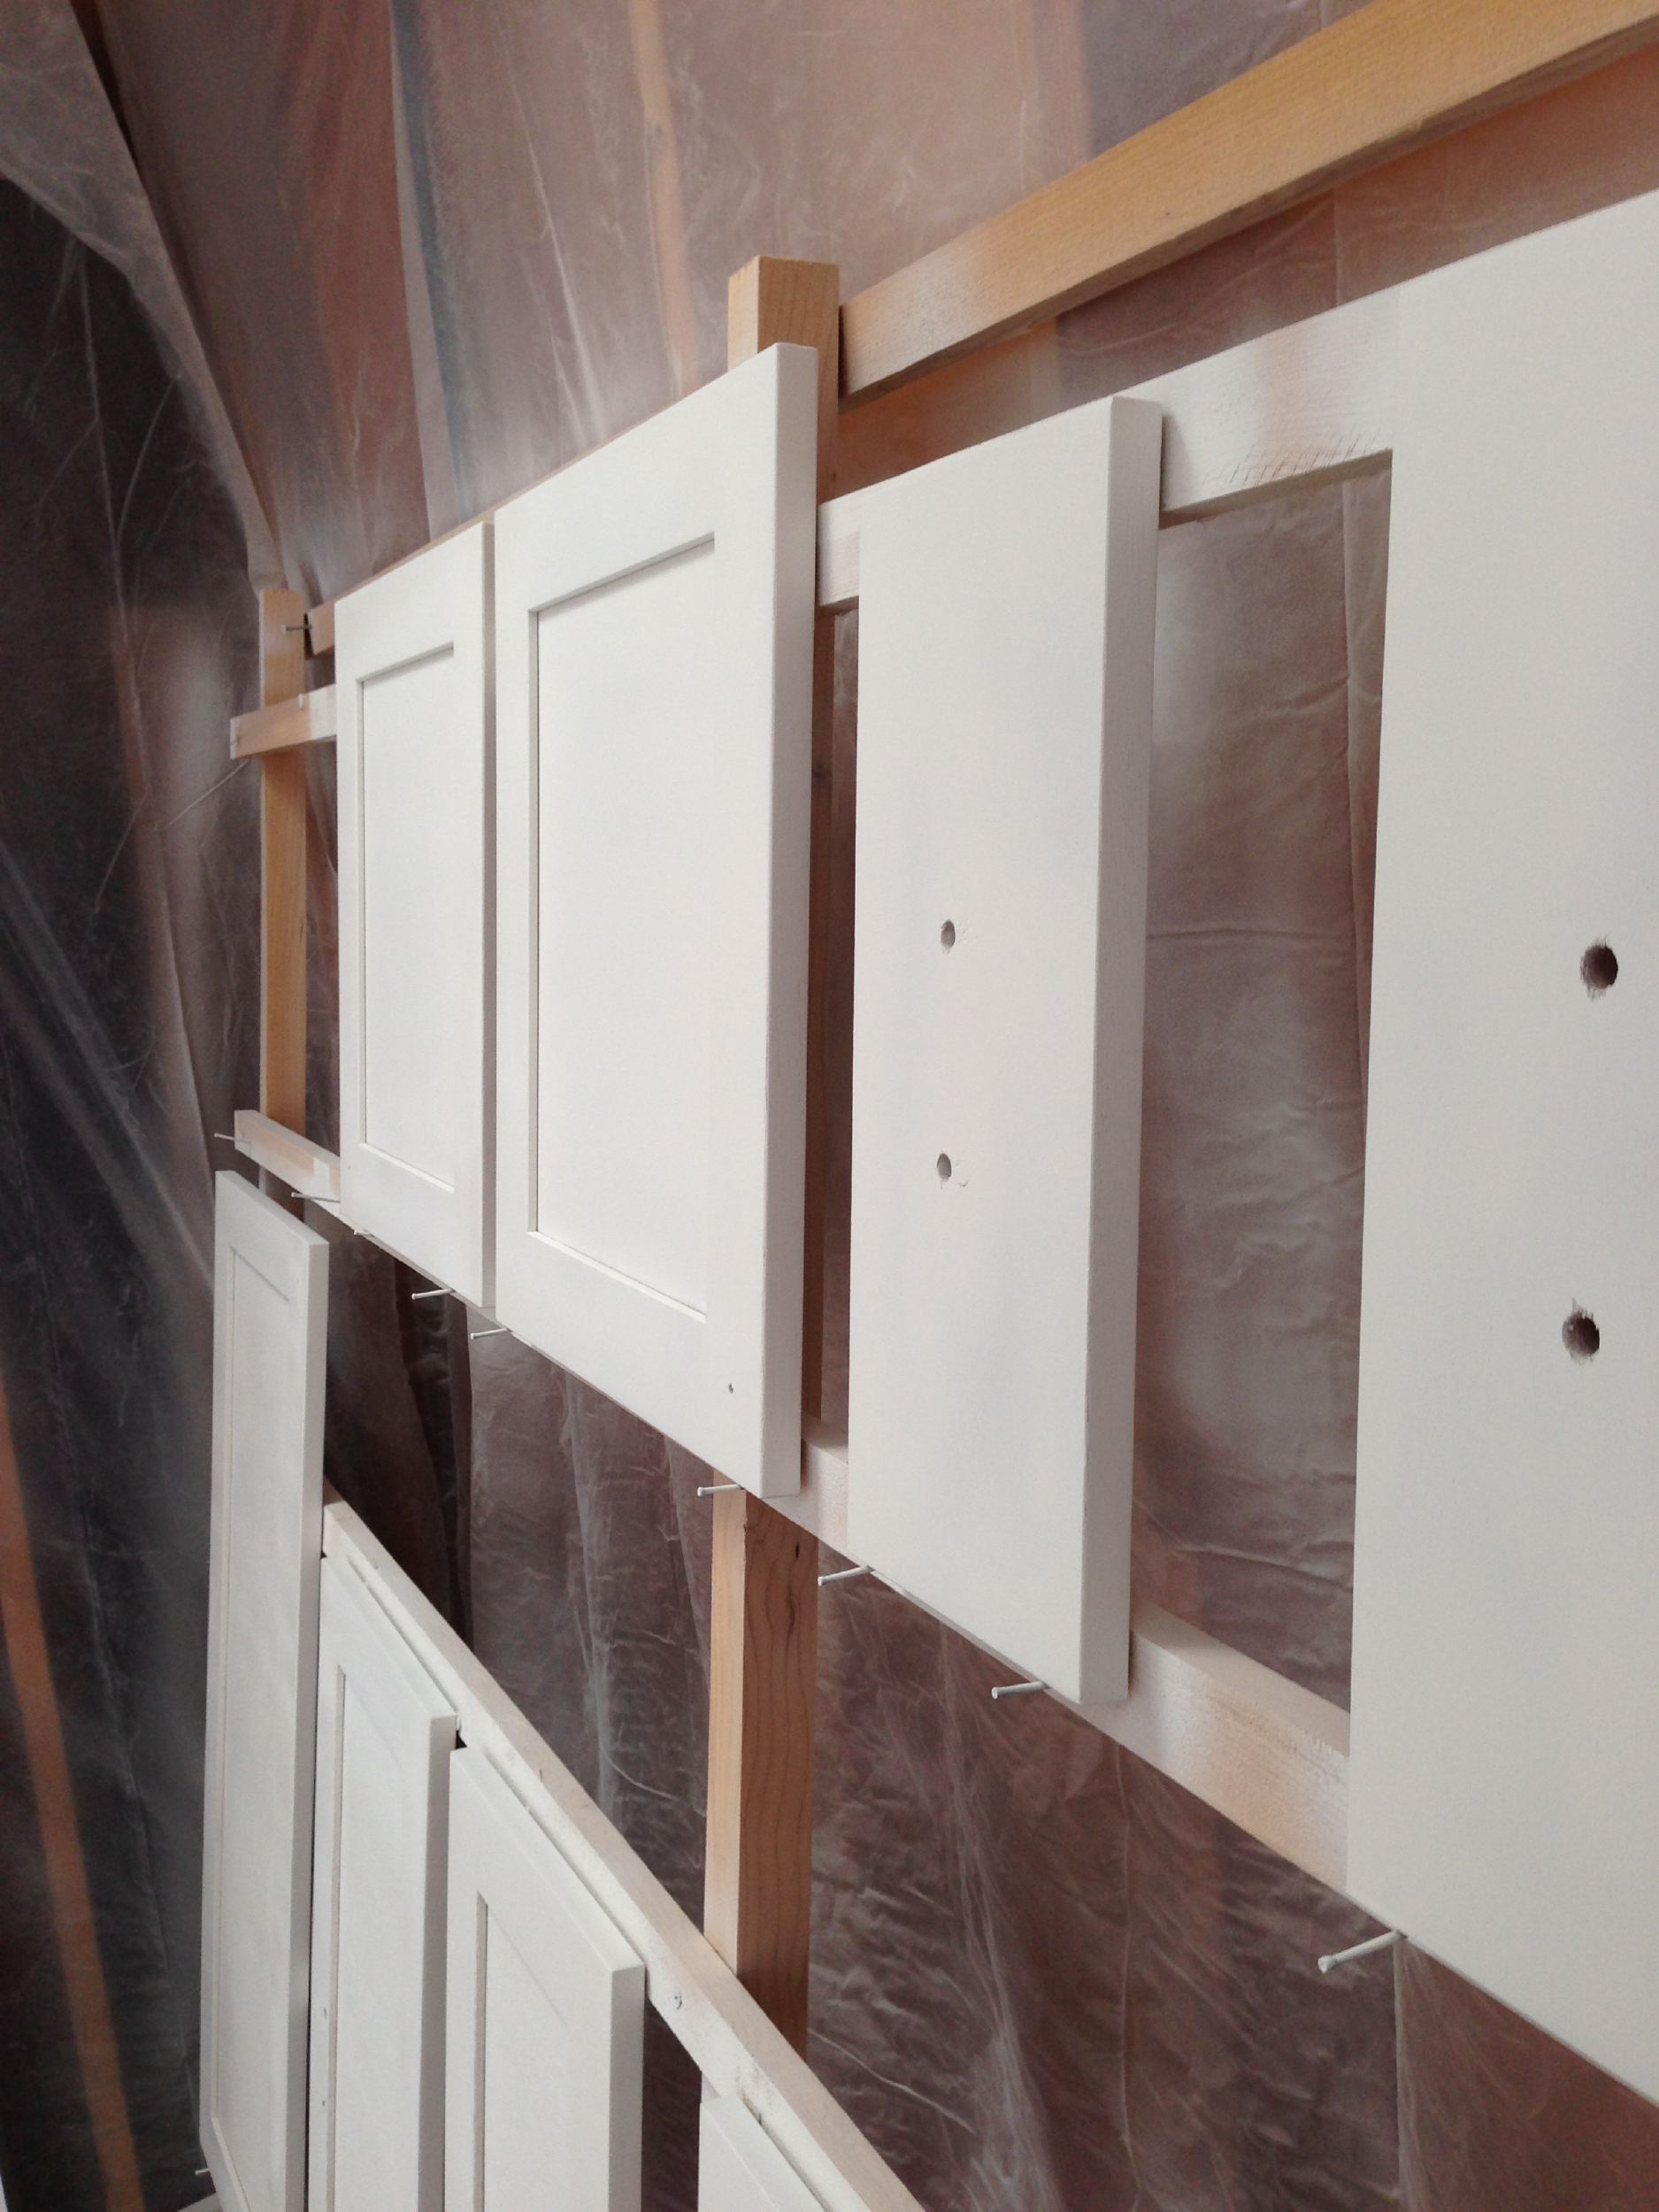 How We Painted Our IKEA Kitchen Cabinets – Shirley & Chris projects blog